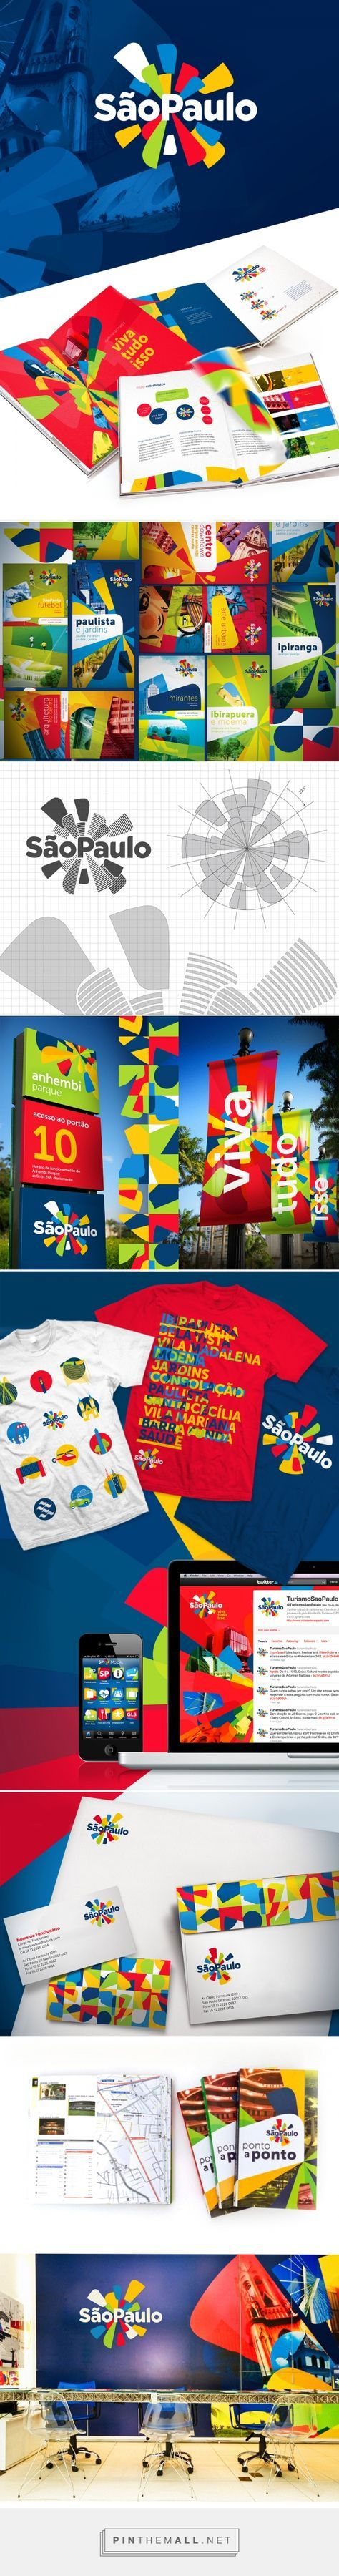 A complete place branding project was developed for Sao Paulo, one of the largest cities in the world. In a greater challenge, the diversity in Sao Paulo had to be translated into a strong design. A visual identity system that took into account every possible interaction and application of the brand. The main objective was to promote Sao Paulo as a unique destination full of opportunities, services, and culture. A proposal to enhance its identity, adding confidence and credibility.